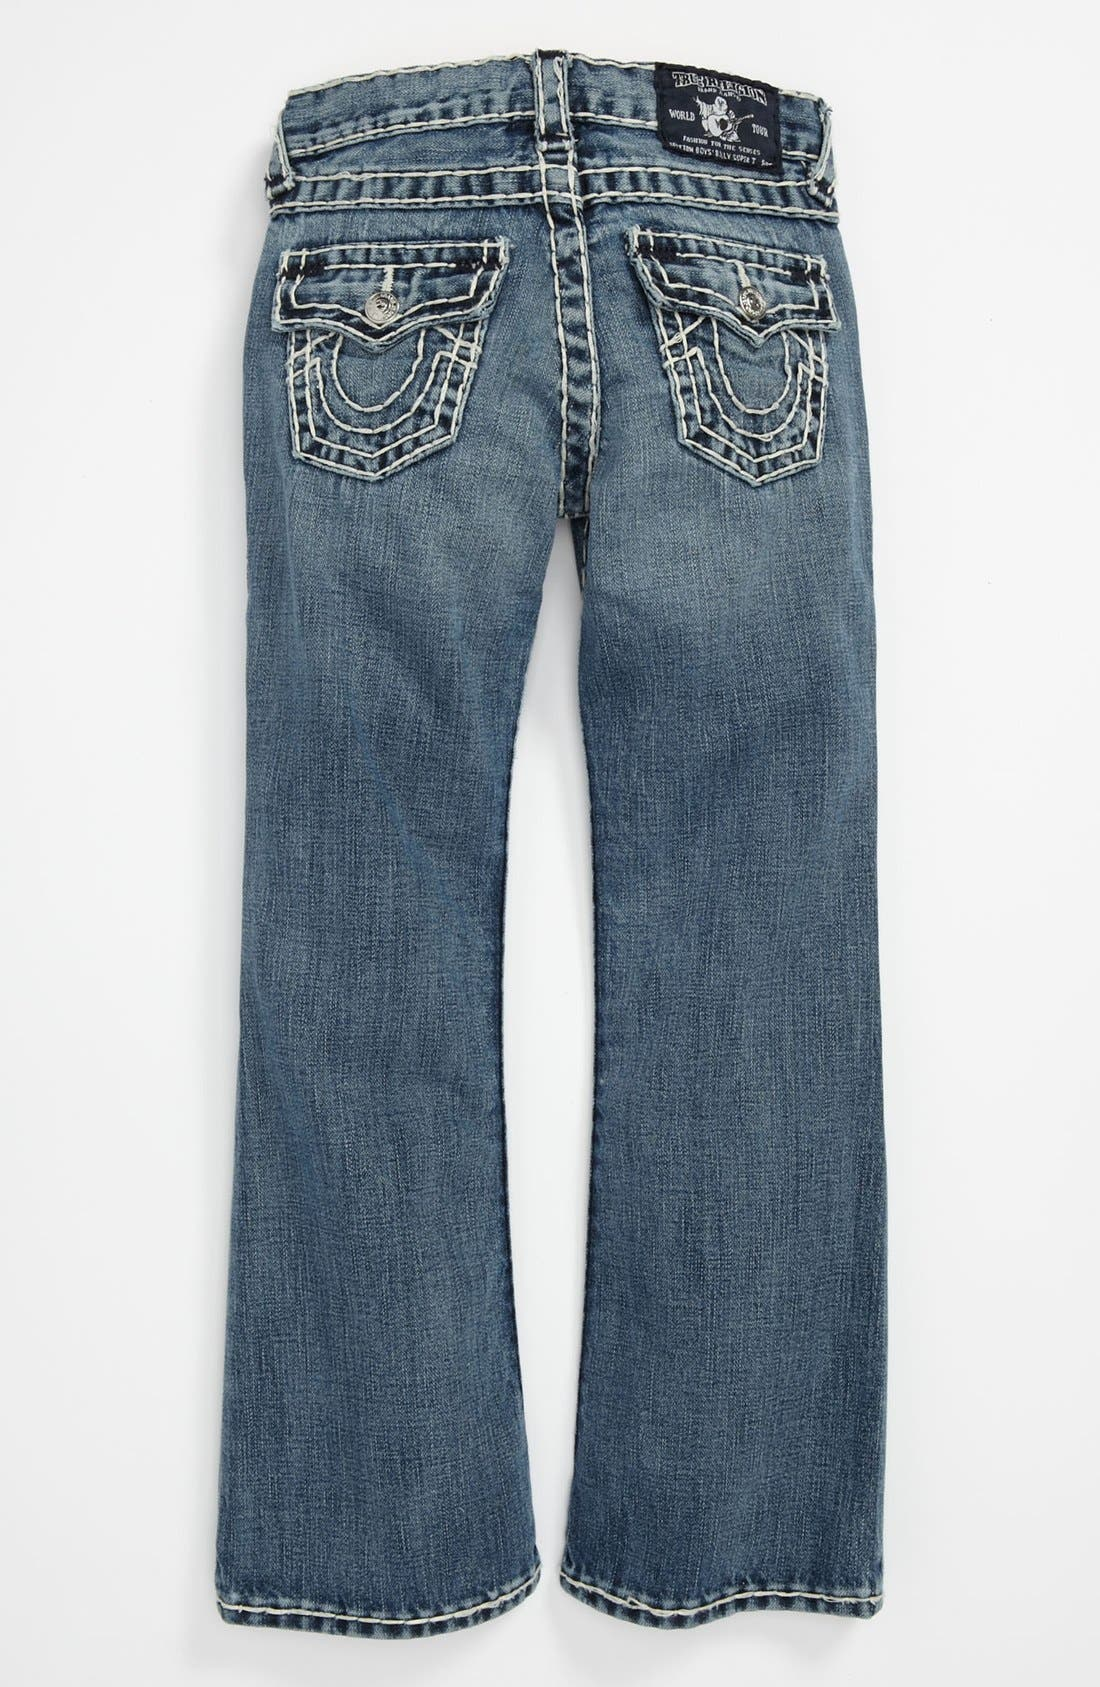 Alternate Image 1 Selected - True Religion Brand Jeans 'Billy Super T' Jeans (Little Boys)